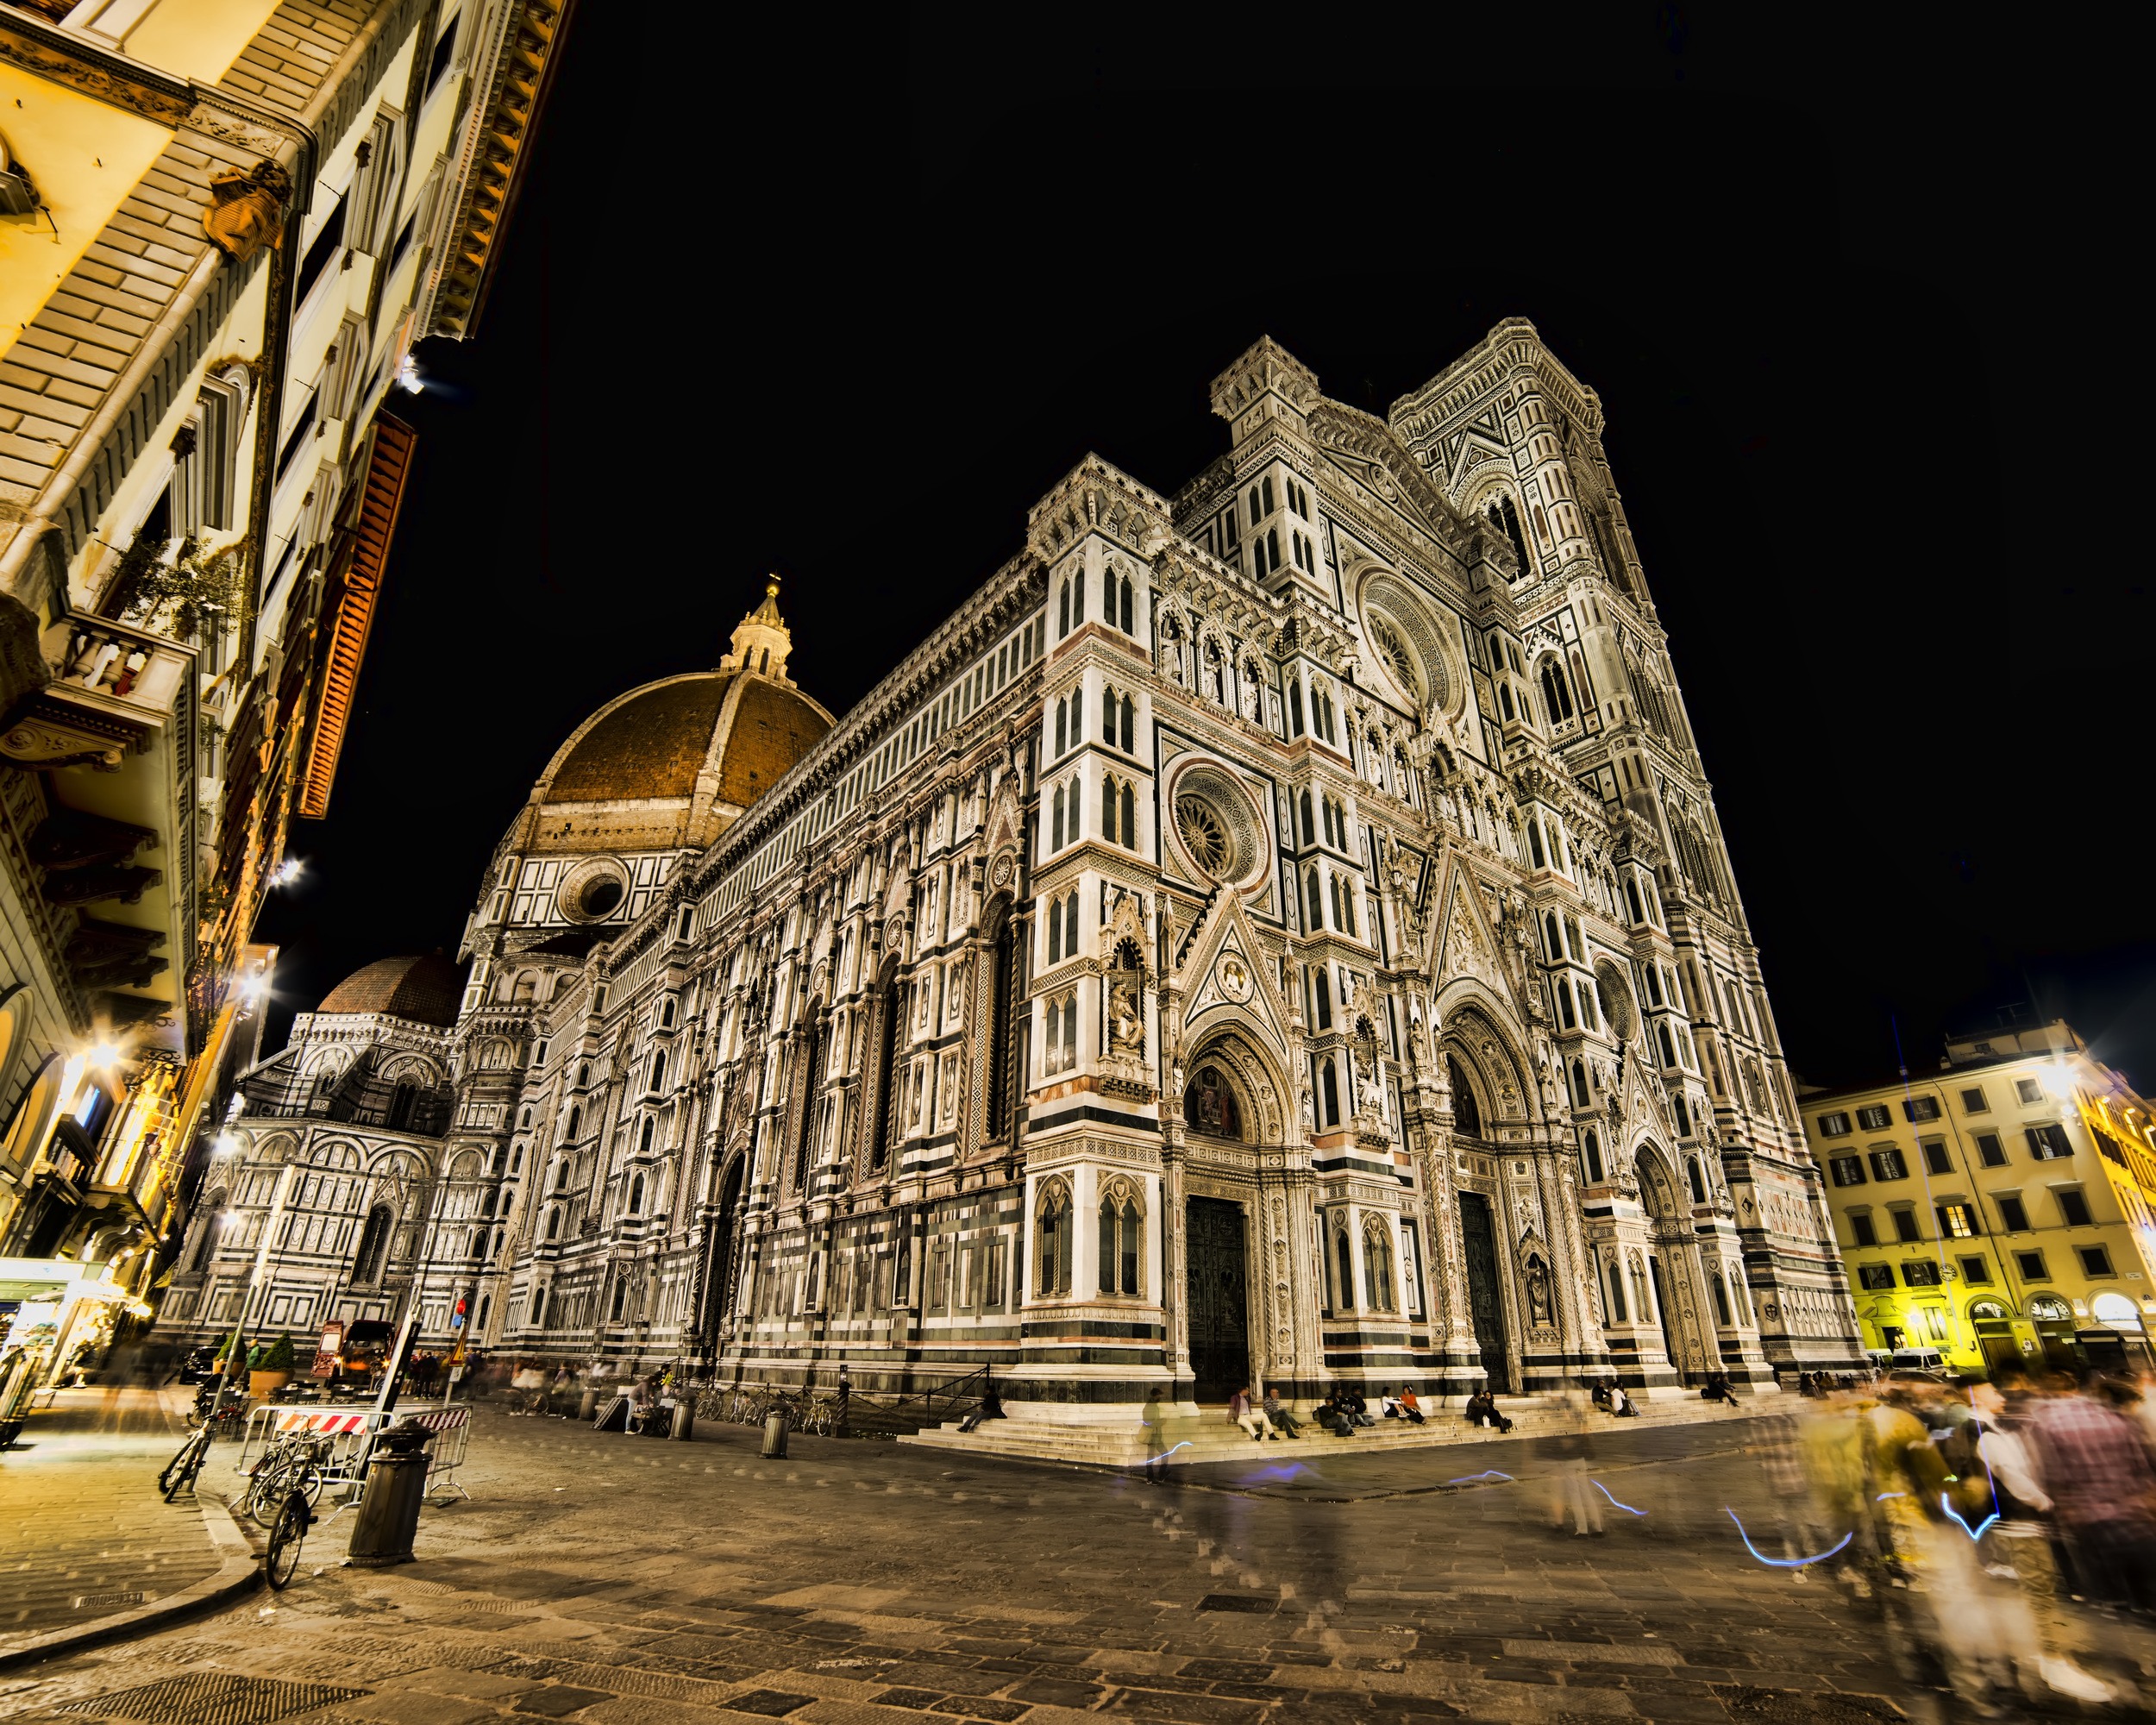 The Duomo at night